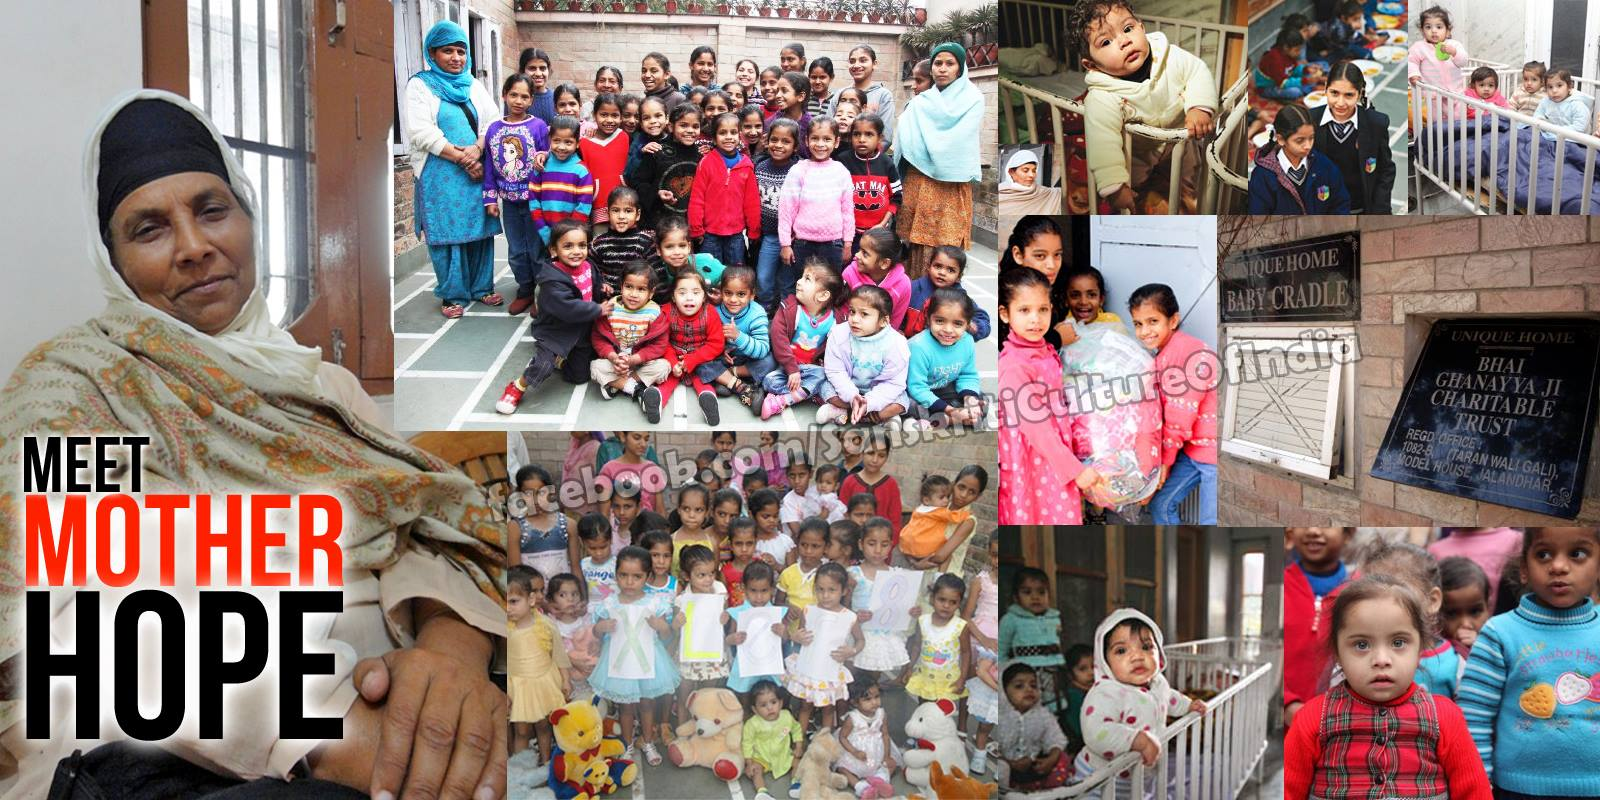 Mother Hope: Prakash Kaur and her Unique Home for Abandoned Girls